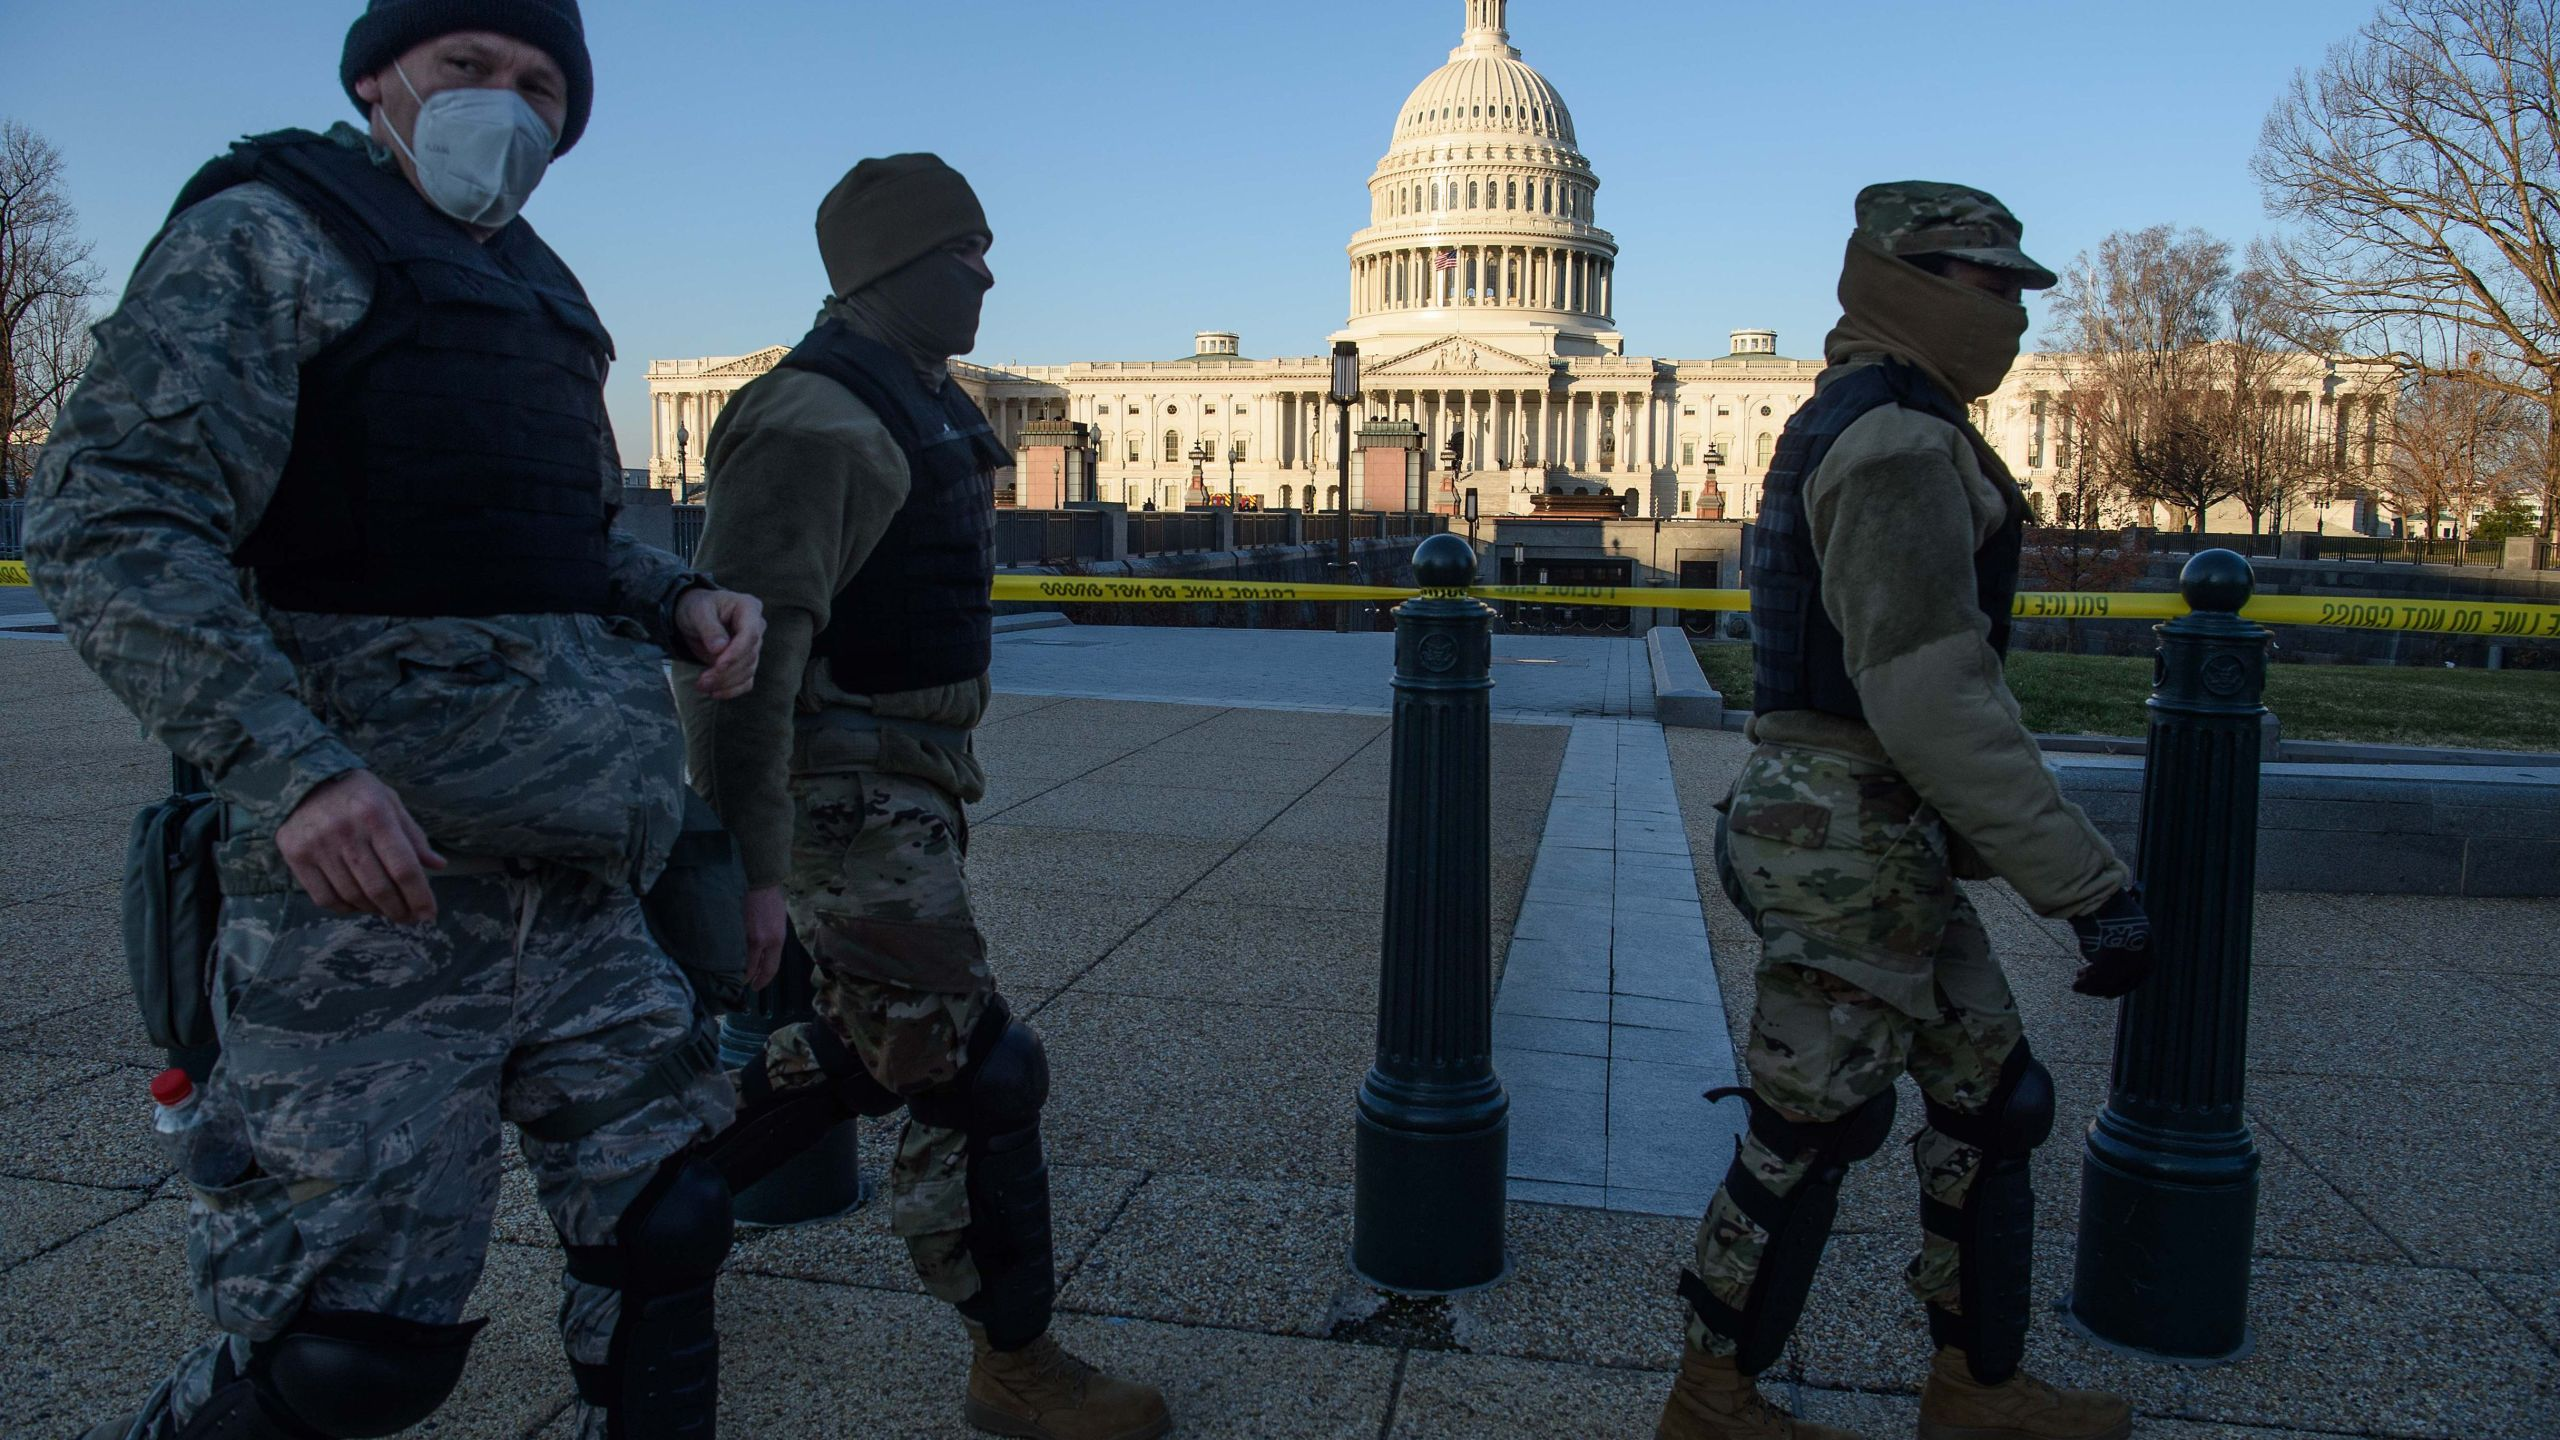 Mass National Guard Deployment During Inauguration Was 'Overkill'